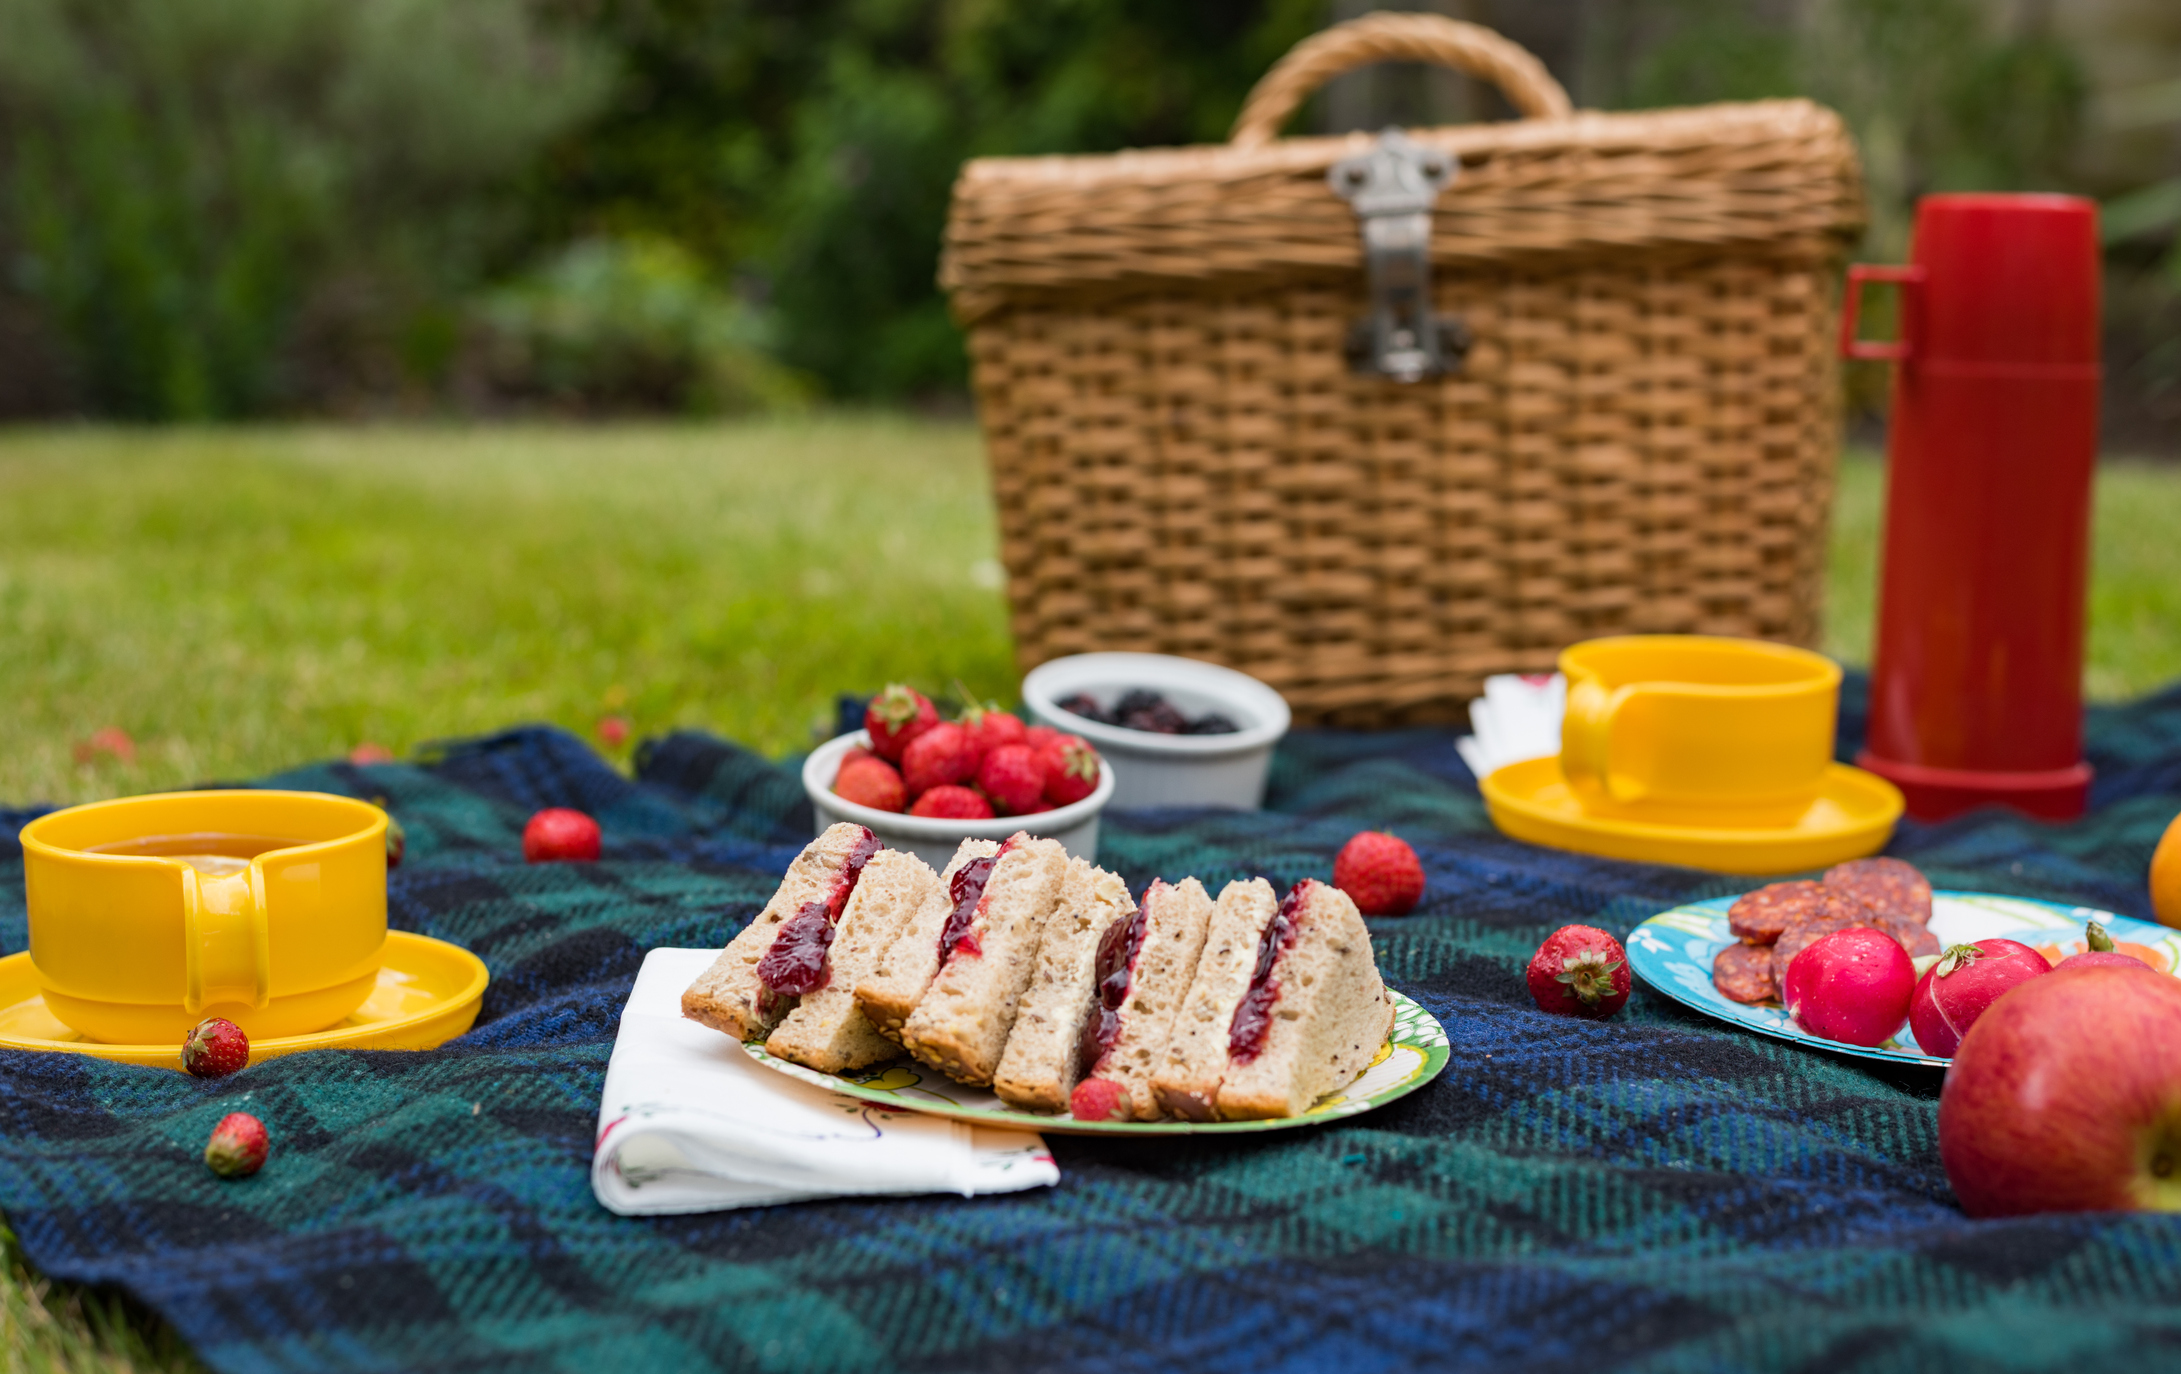 A cruise widespread in a park including jam sandwiches, fruit, a basket and a yellow crater